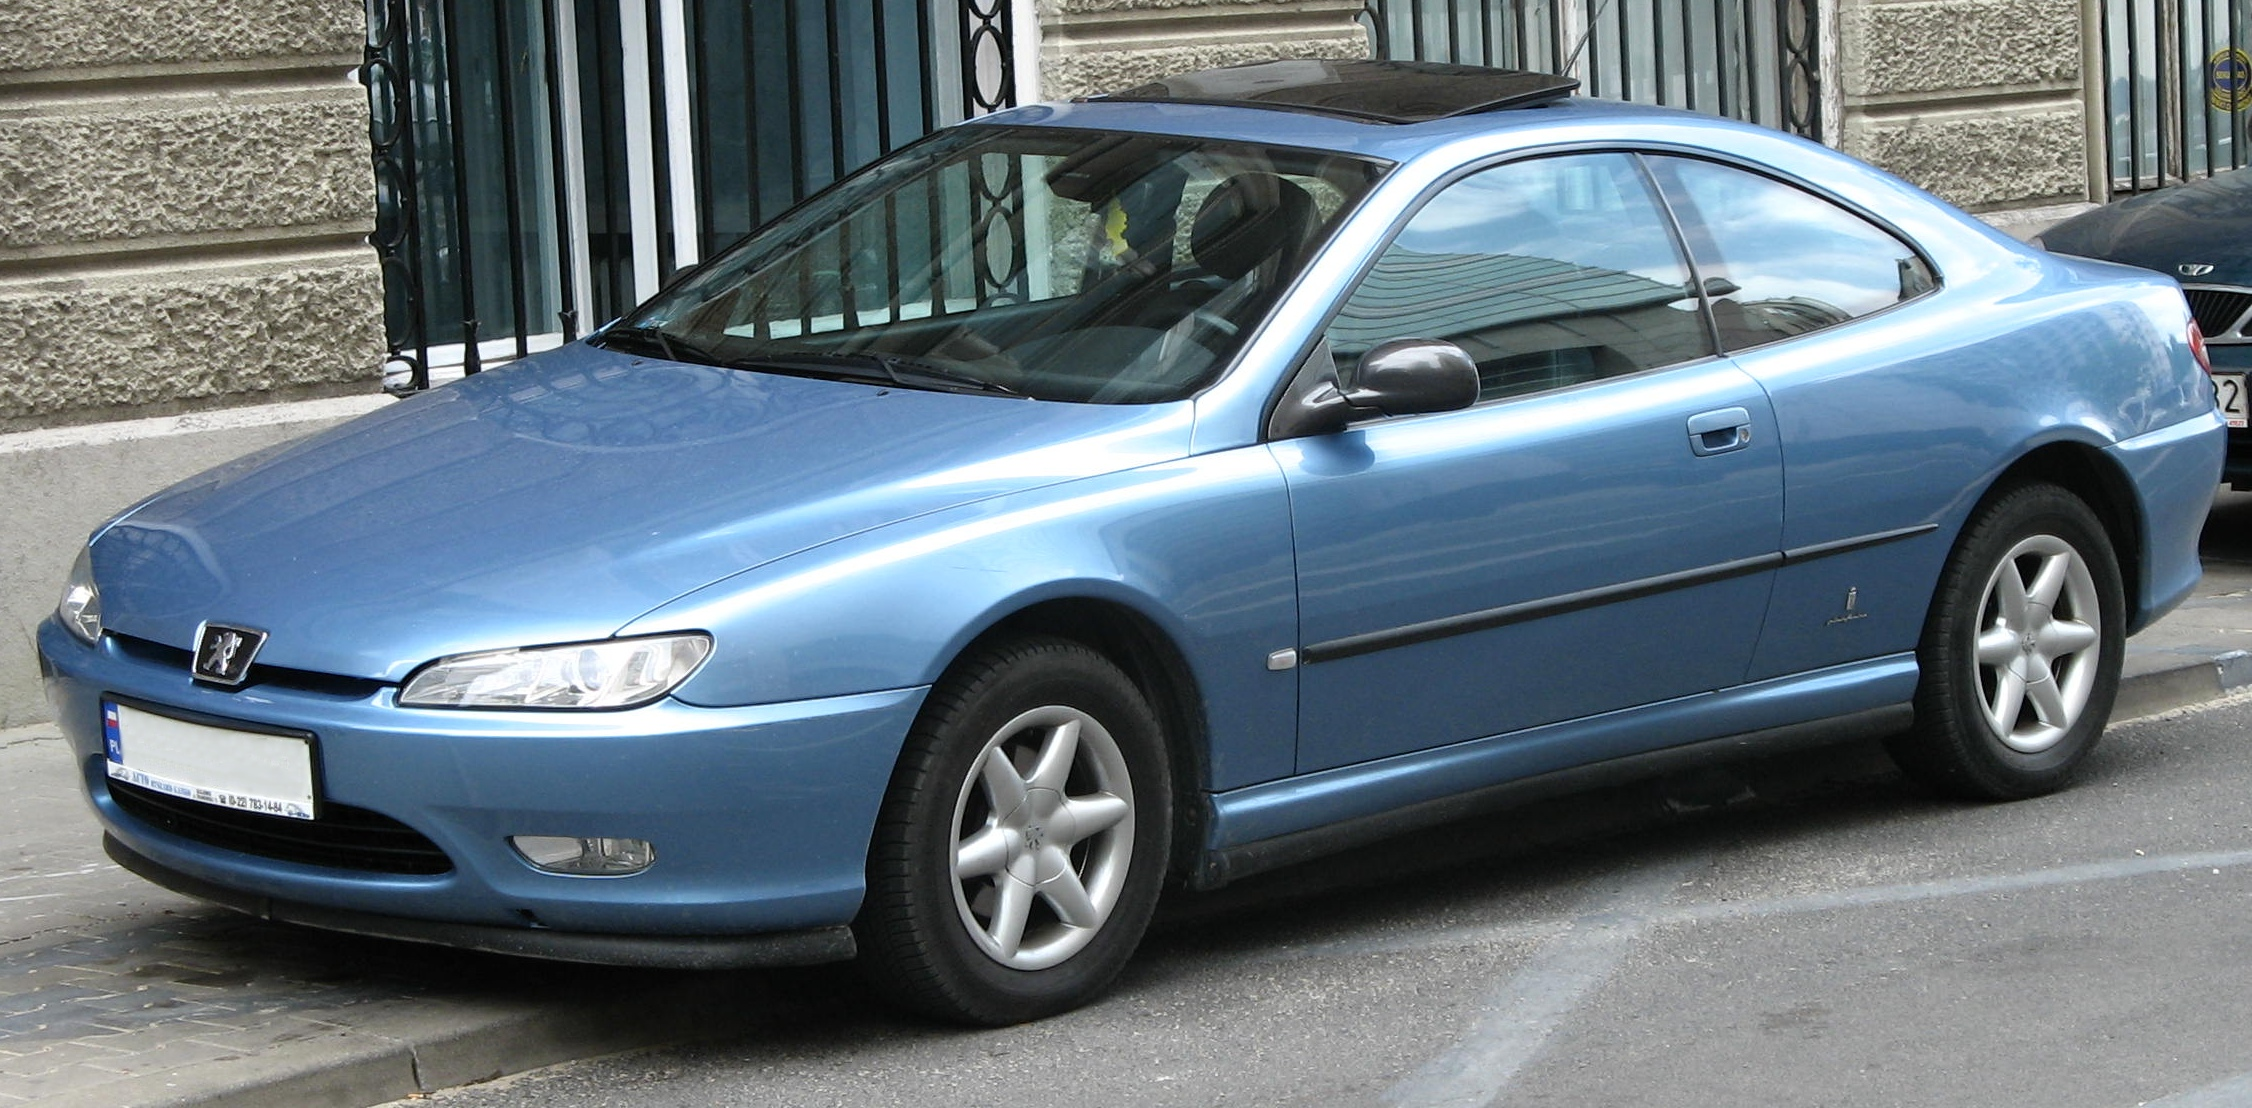 peugeot 406 coupe 2.2 #6